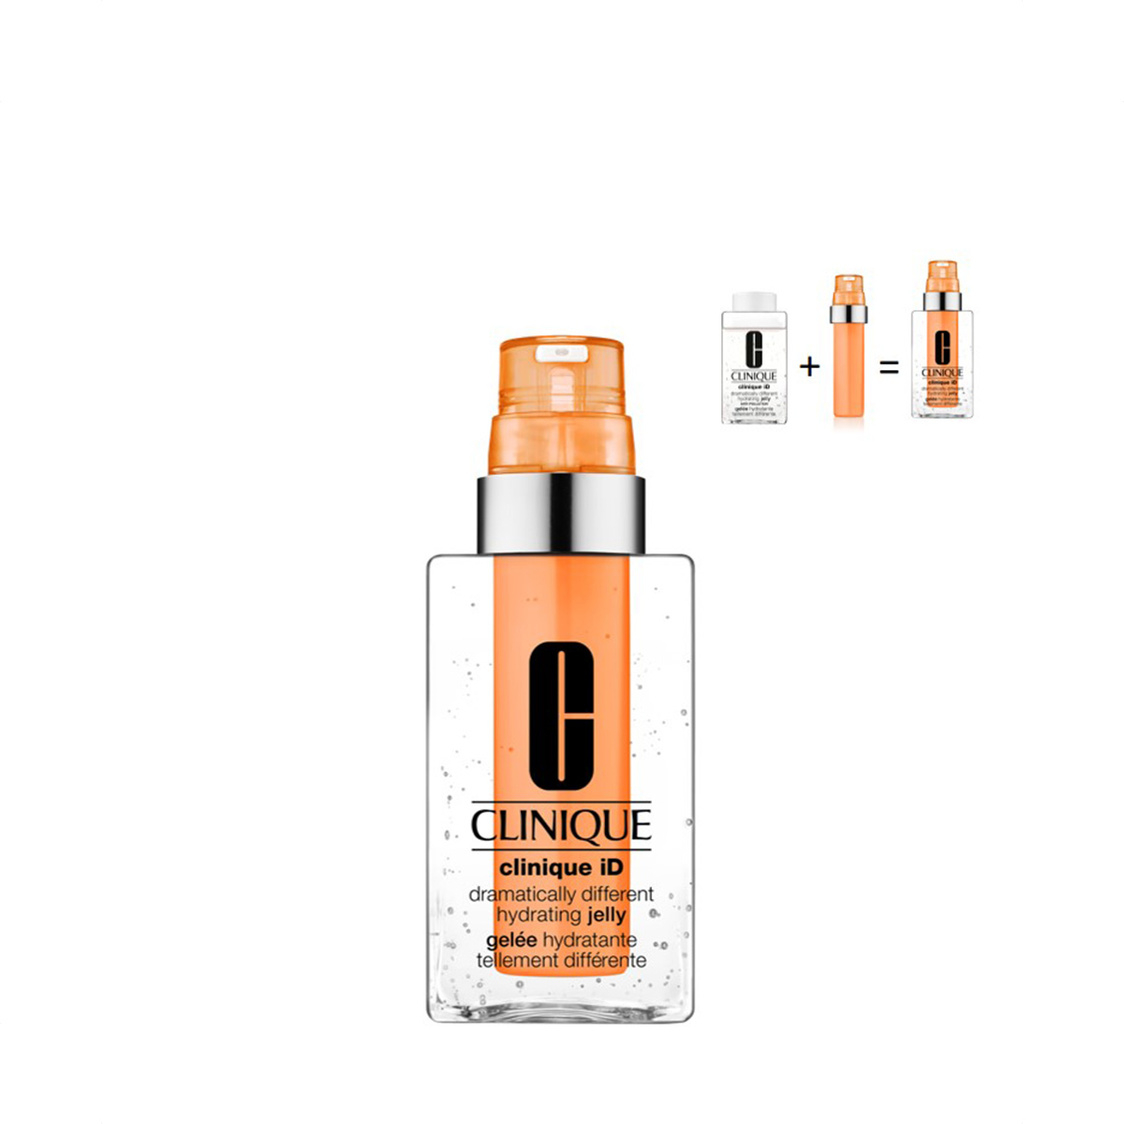 Clinique iD Dramatically Different Hydrating Jelly 115ml  Activator Cartridge Imperfections 10ml